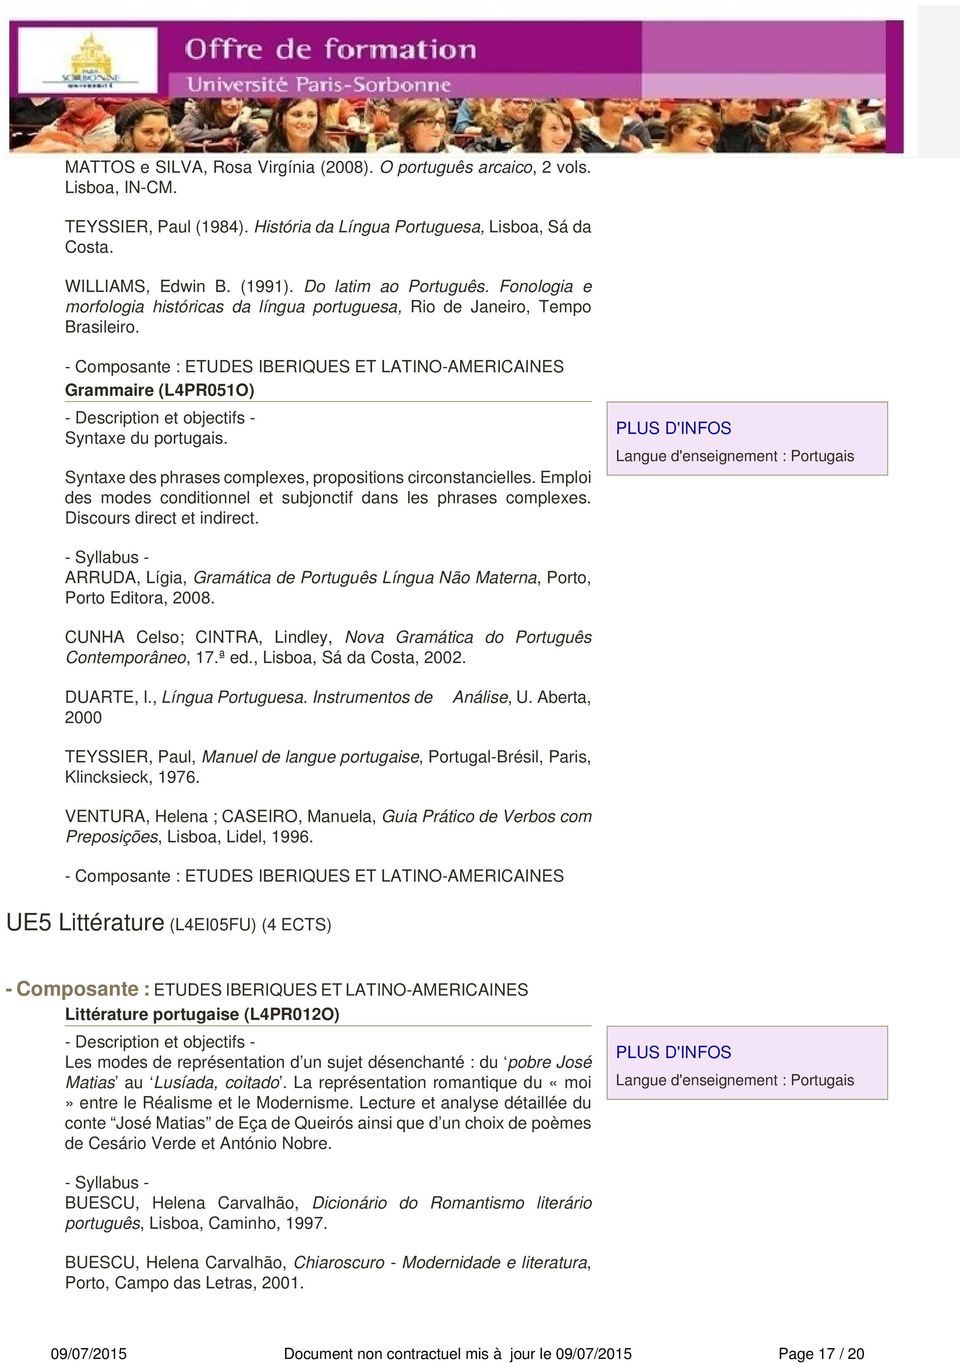 Syntaxe des phrases complexes, propositions circonstancielles. Emploi des modes conditionnel et subjonctif dans les phrases complexes. Discours direct et indirect.